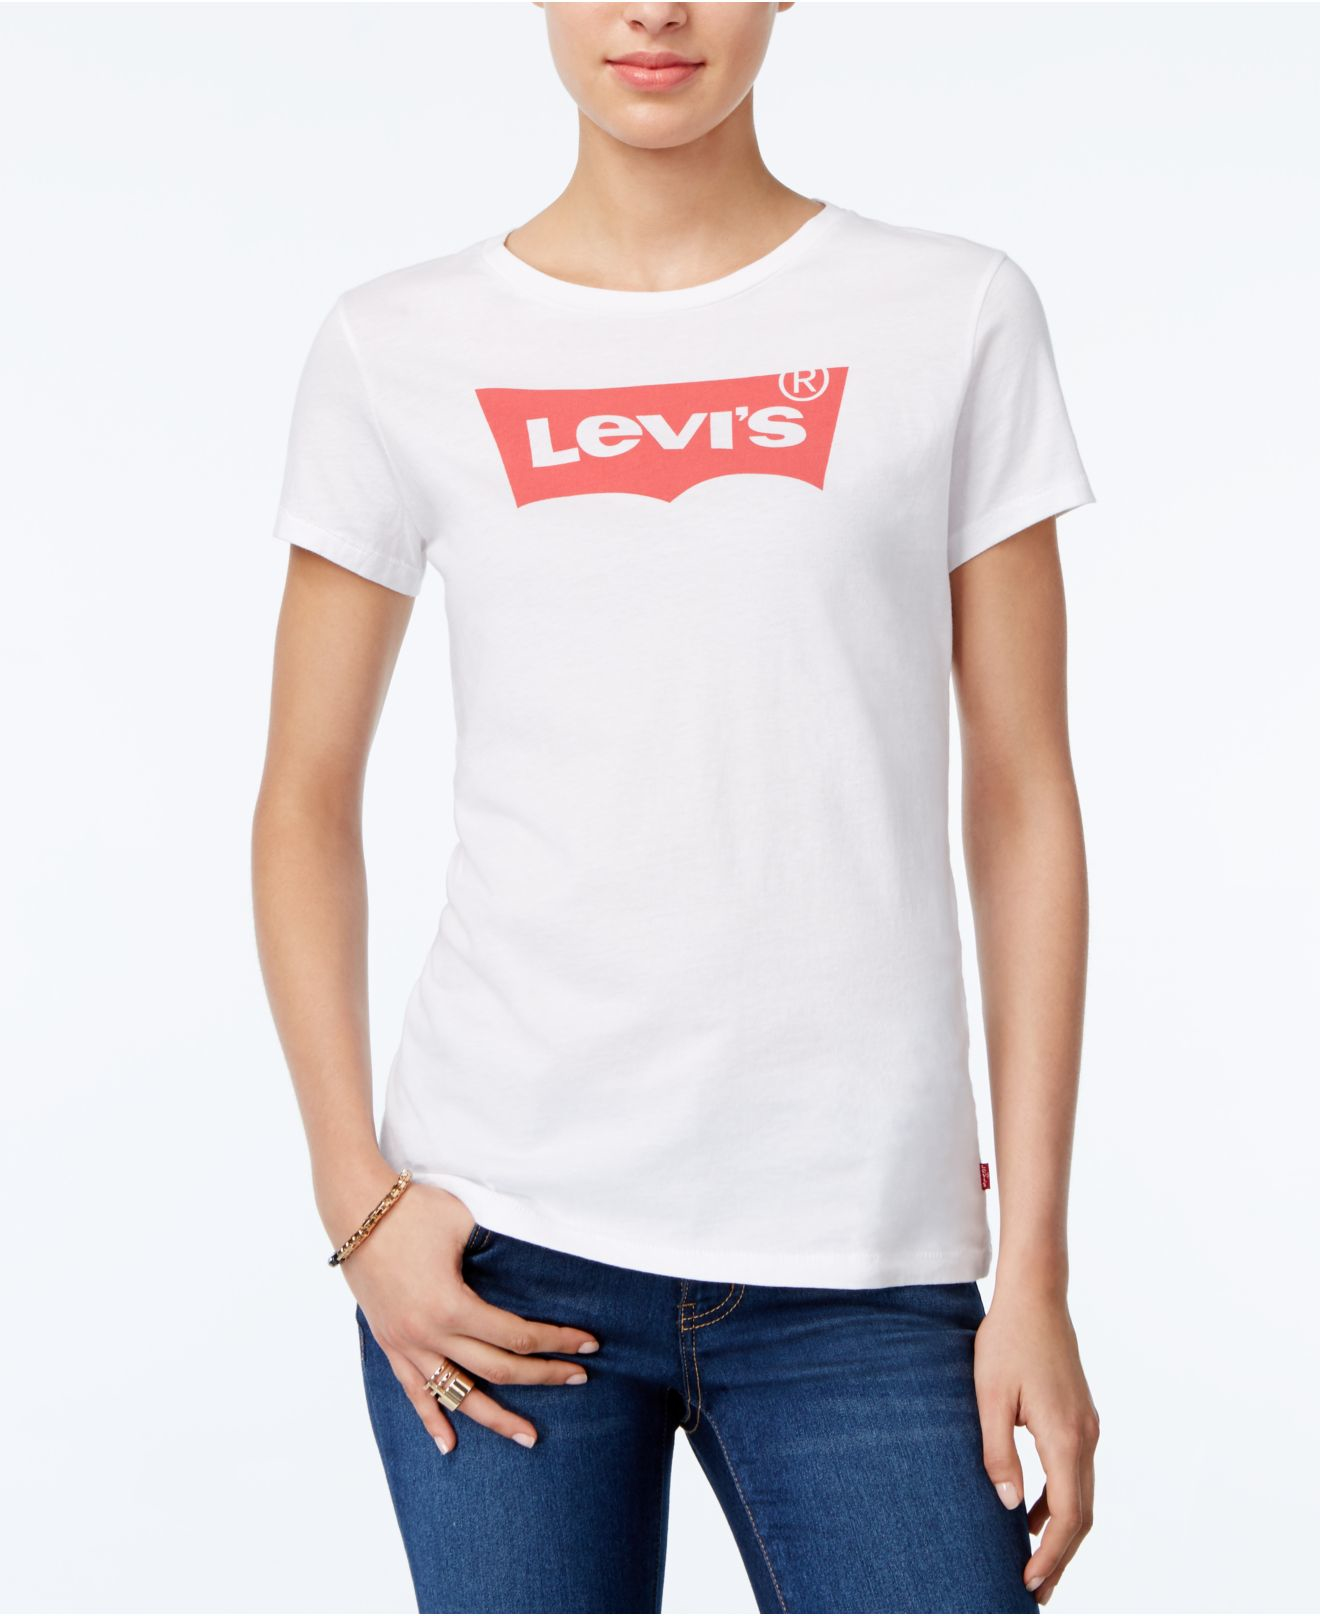 Levi 39 s slim logo graphic t shirt in white lyst for Levis t shirt sale